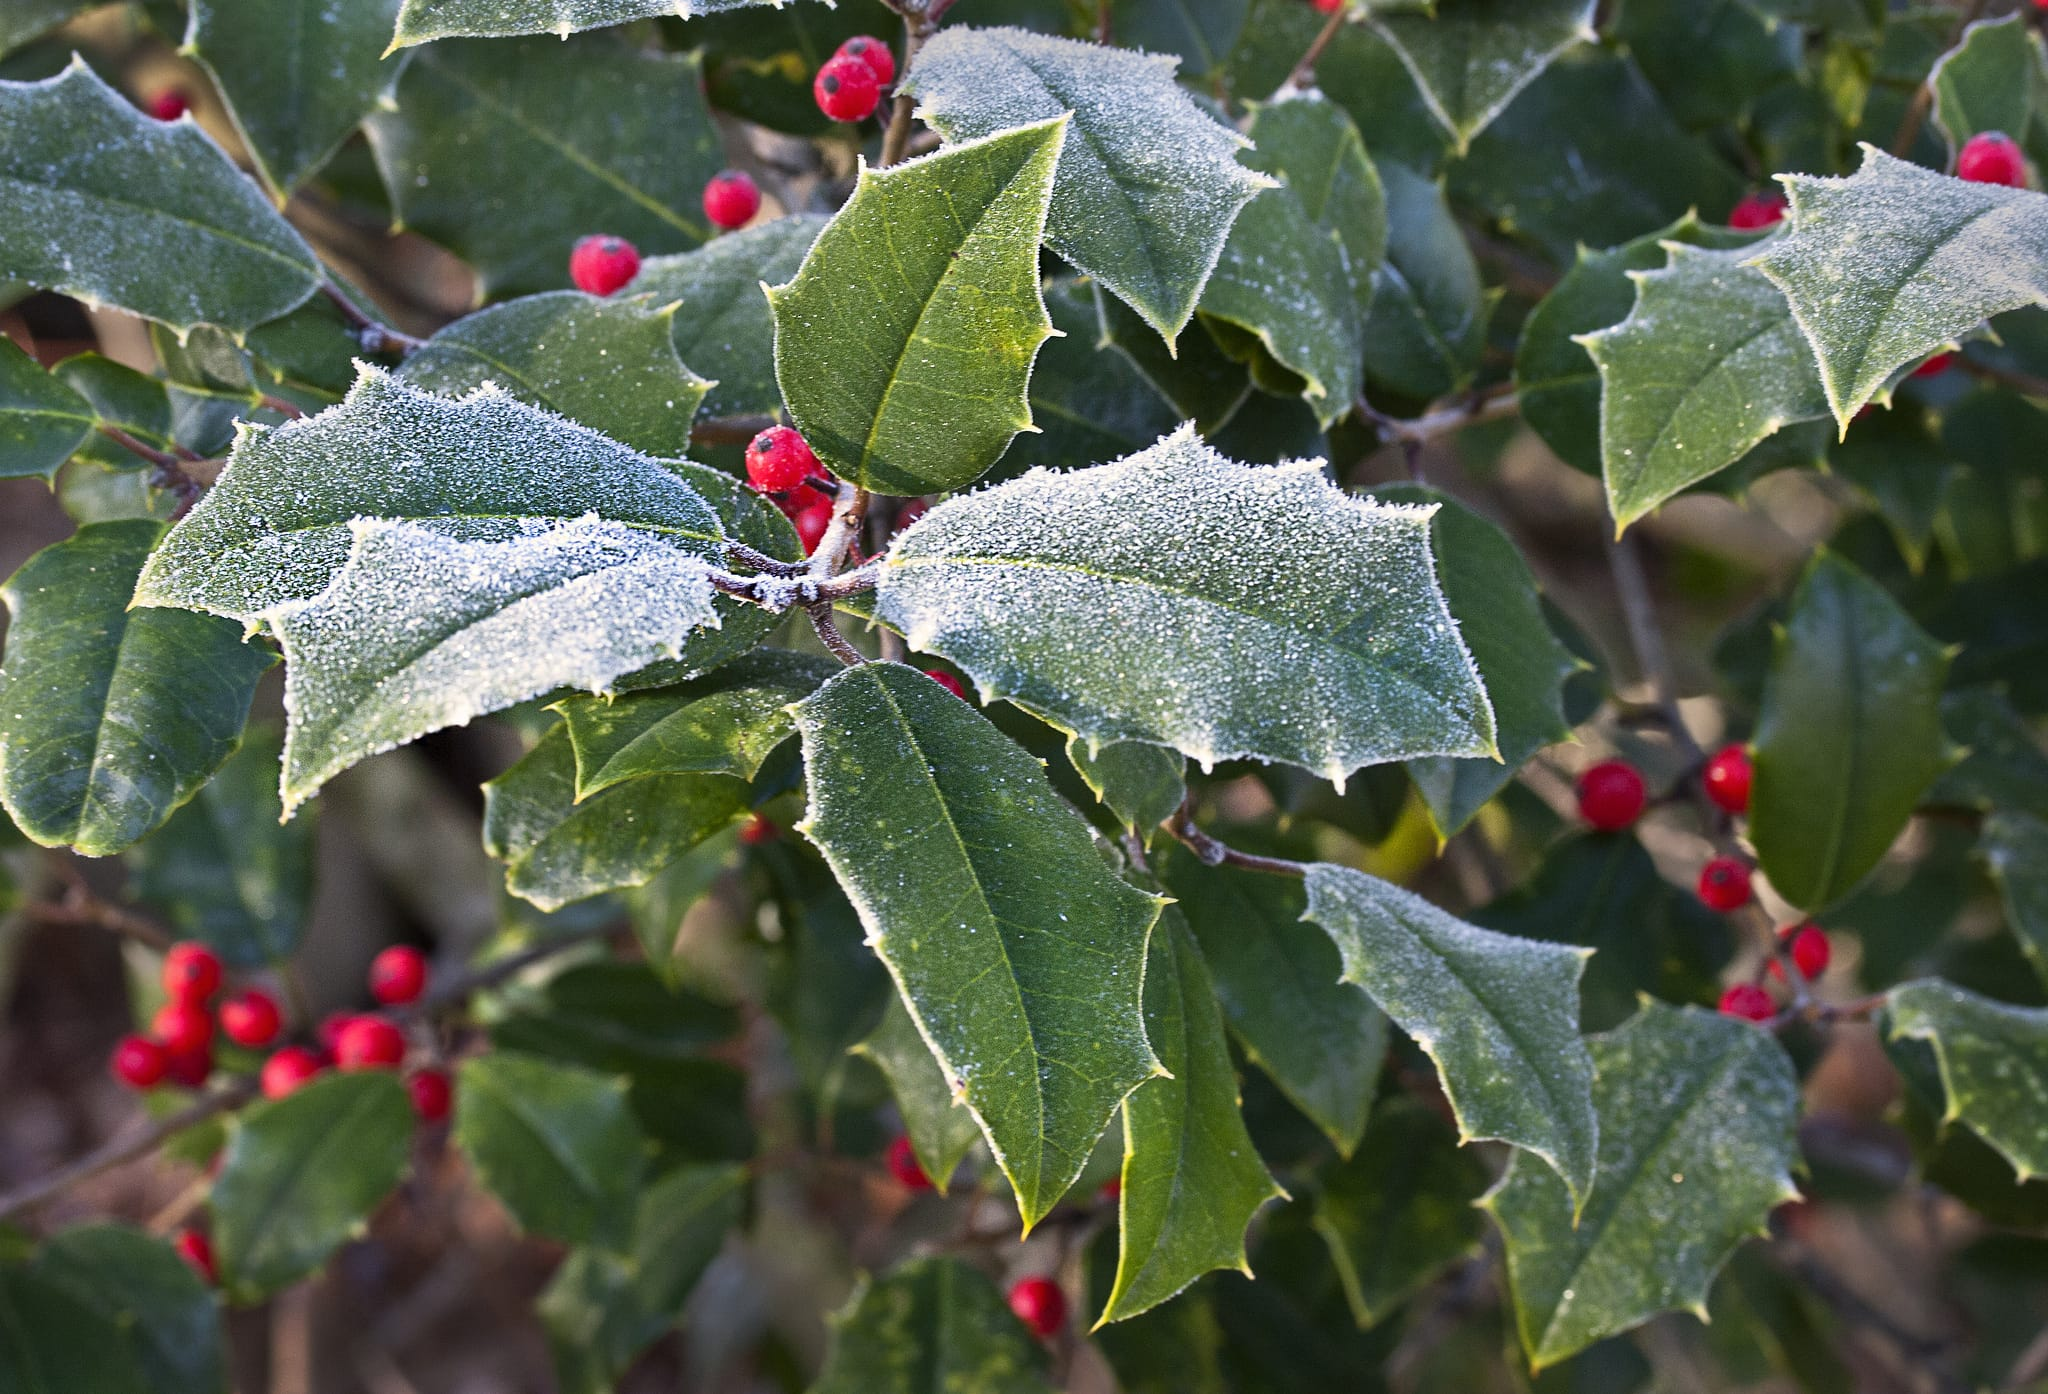 Image of the Holly plant